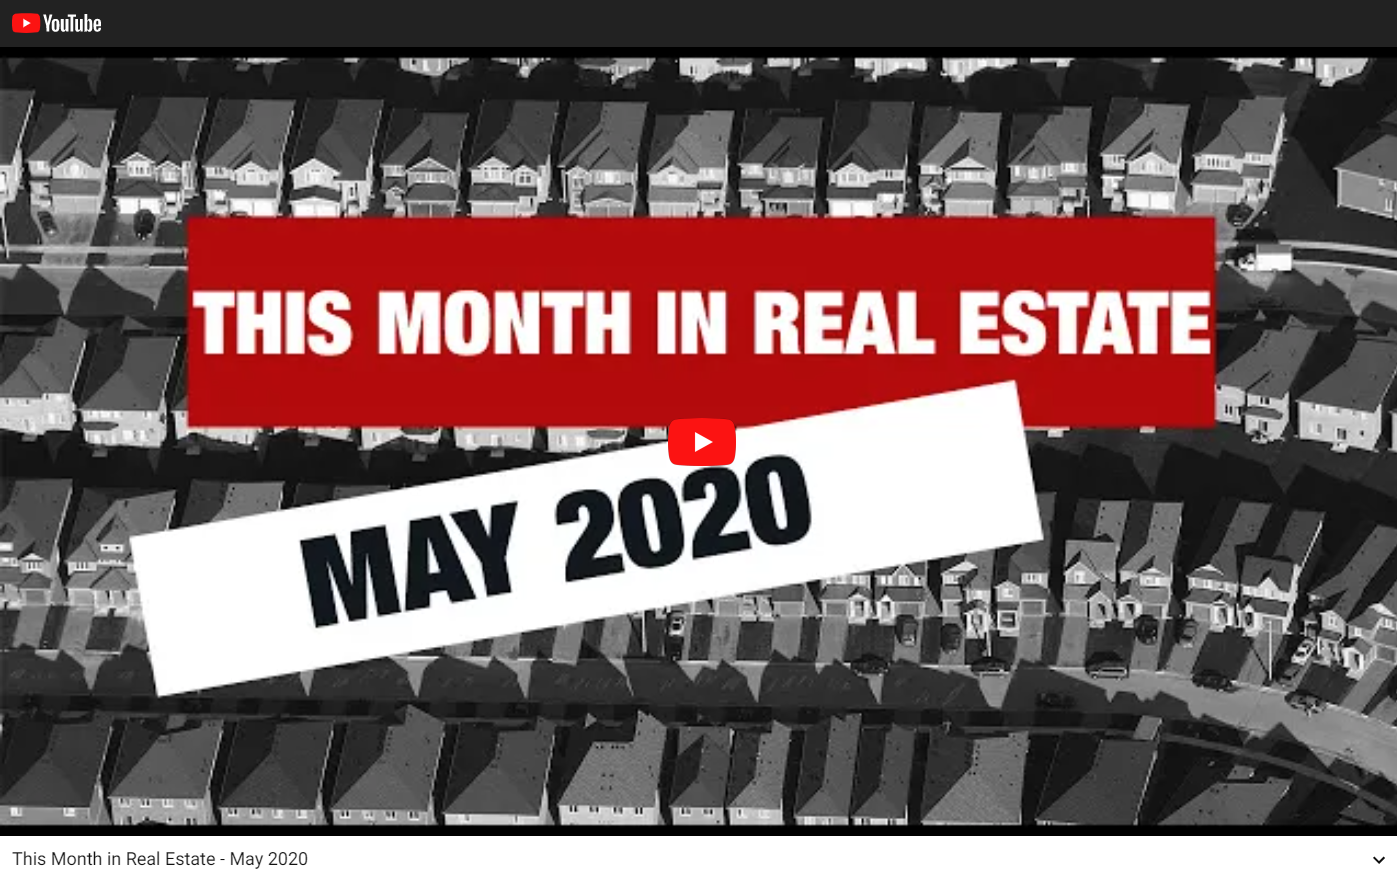 Keller Williams Realty This month in real estate May 2020 for Jean-Luc Andriot blog 051120